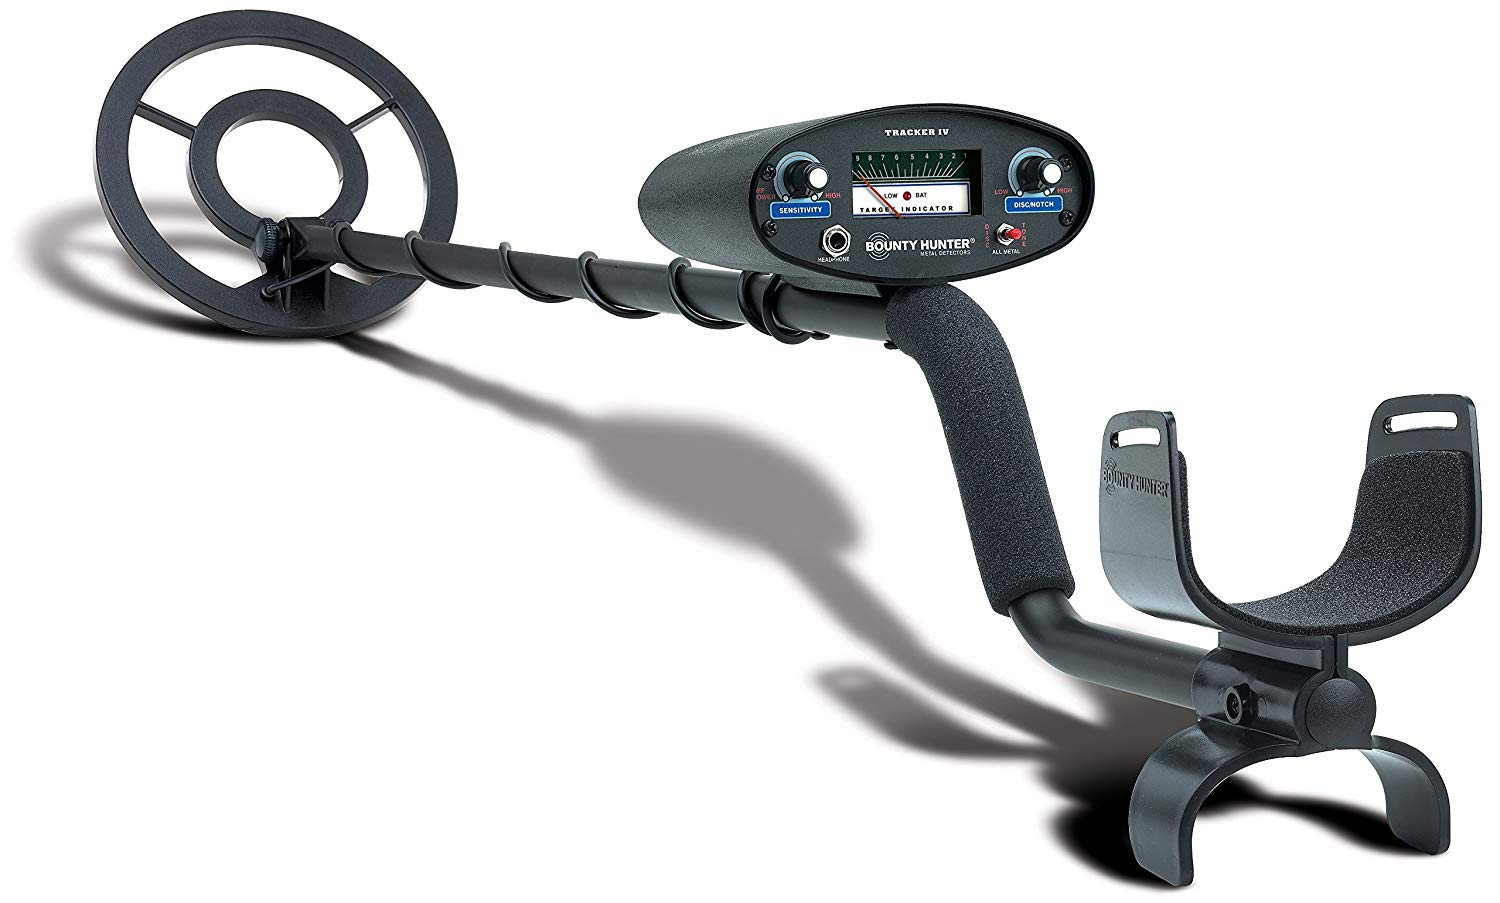 Hunter TK4 Tracker IV Best Metal Detector for the Money